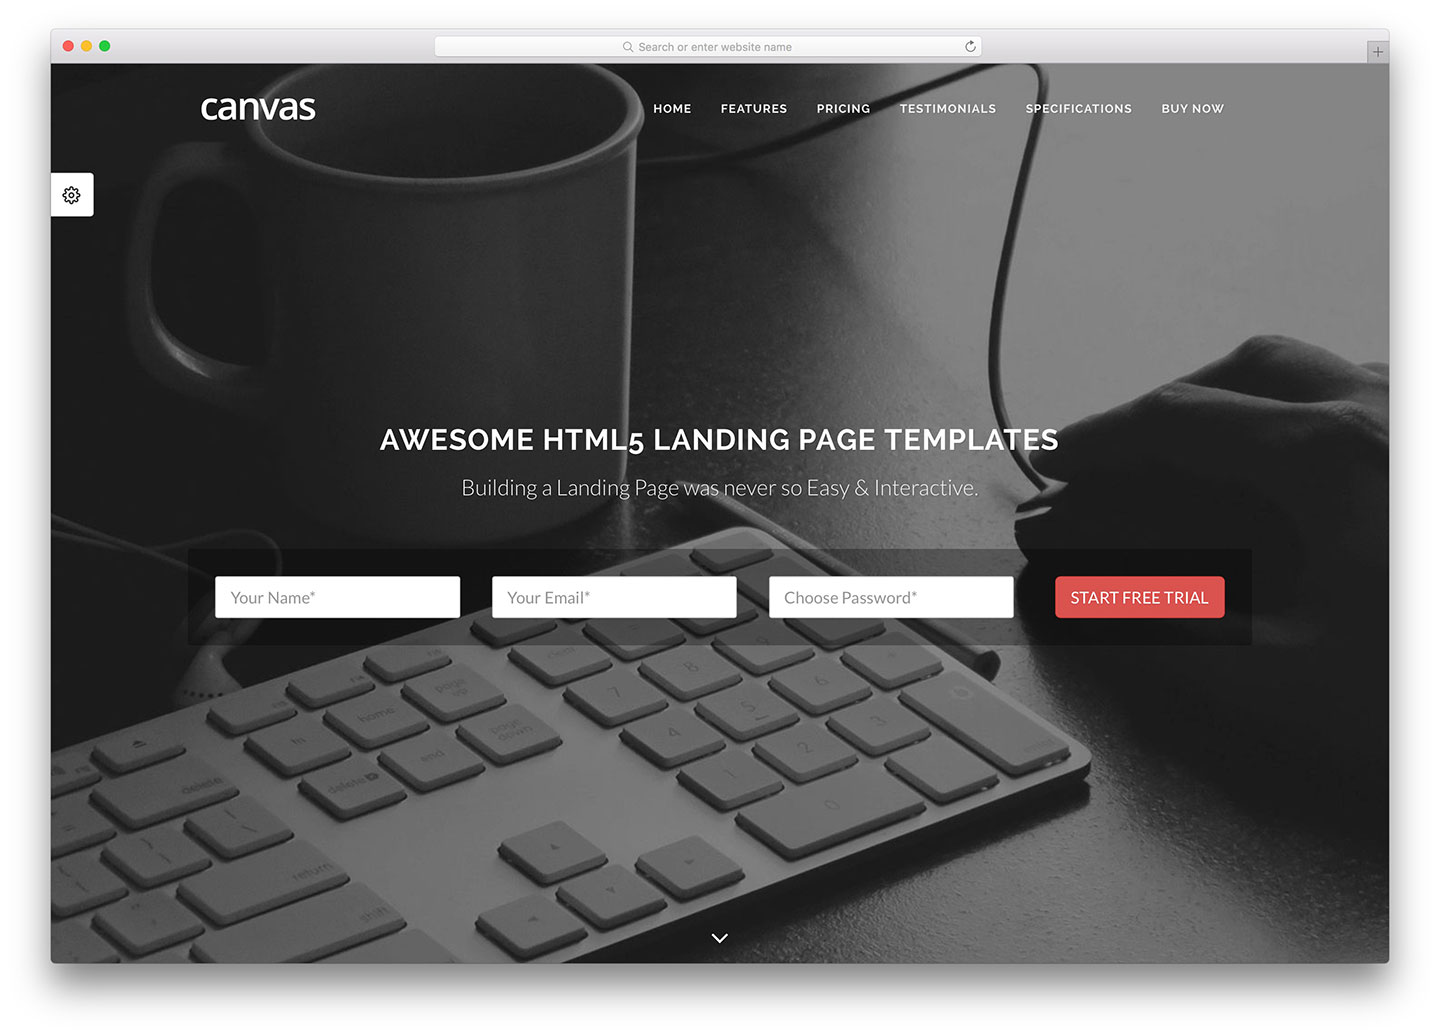 22 Awesome HTML5 Landing Page Templates 2017 - Colorlib